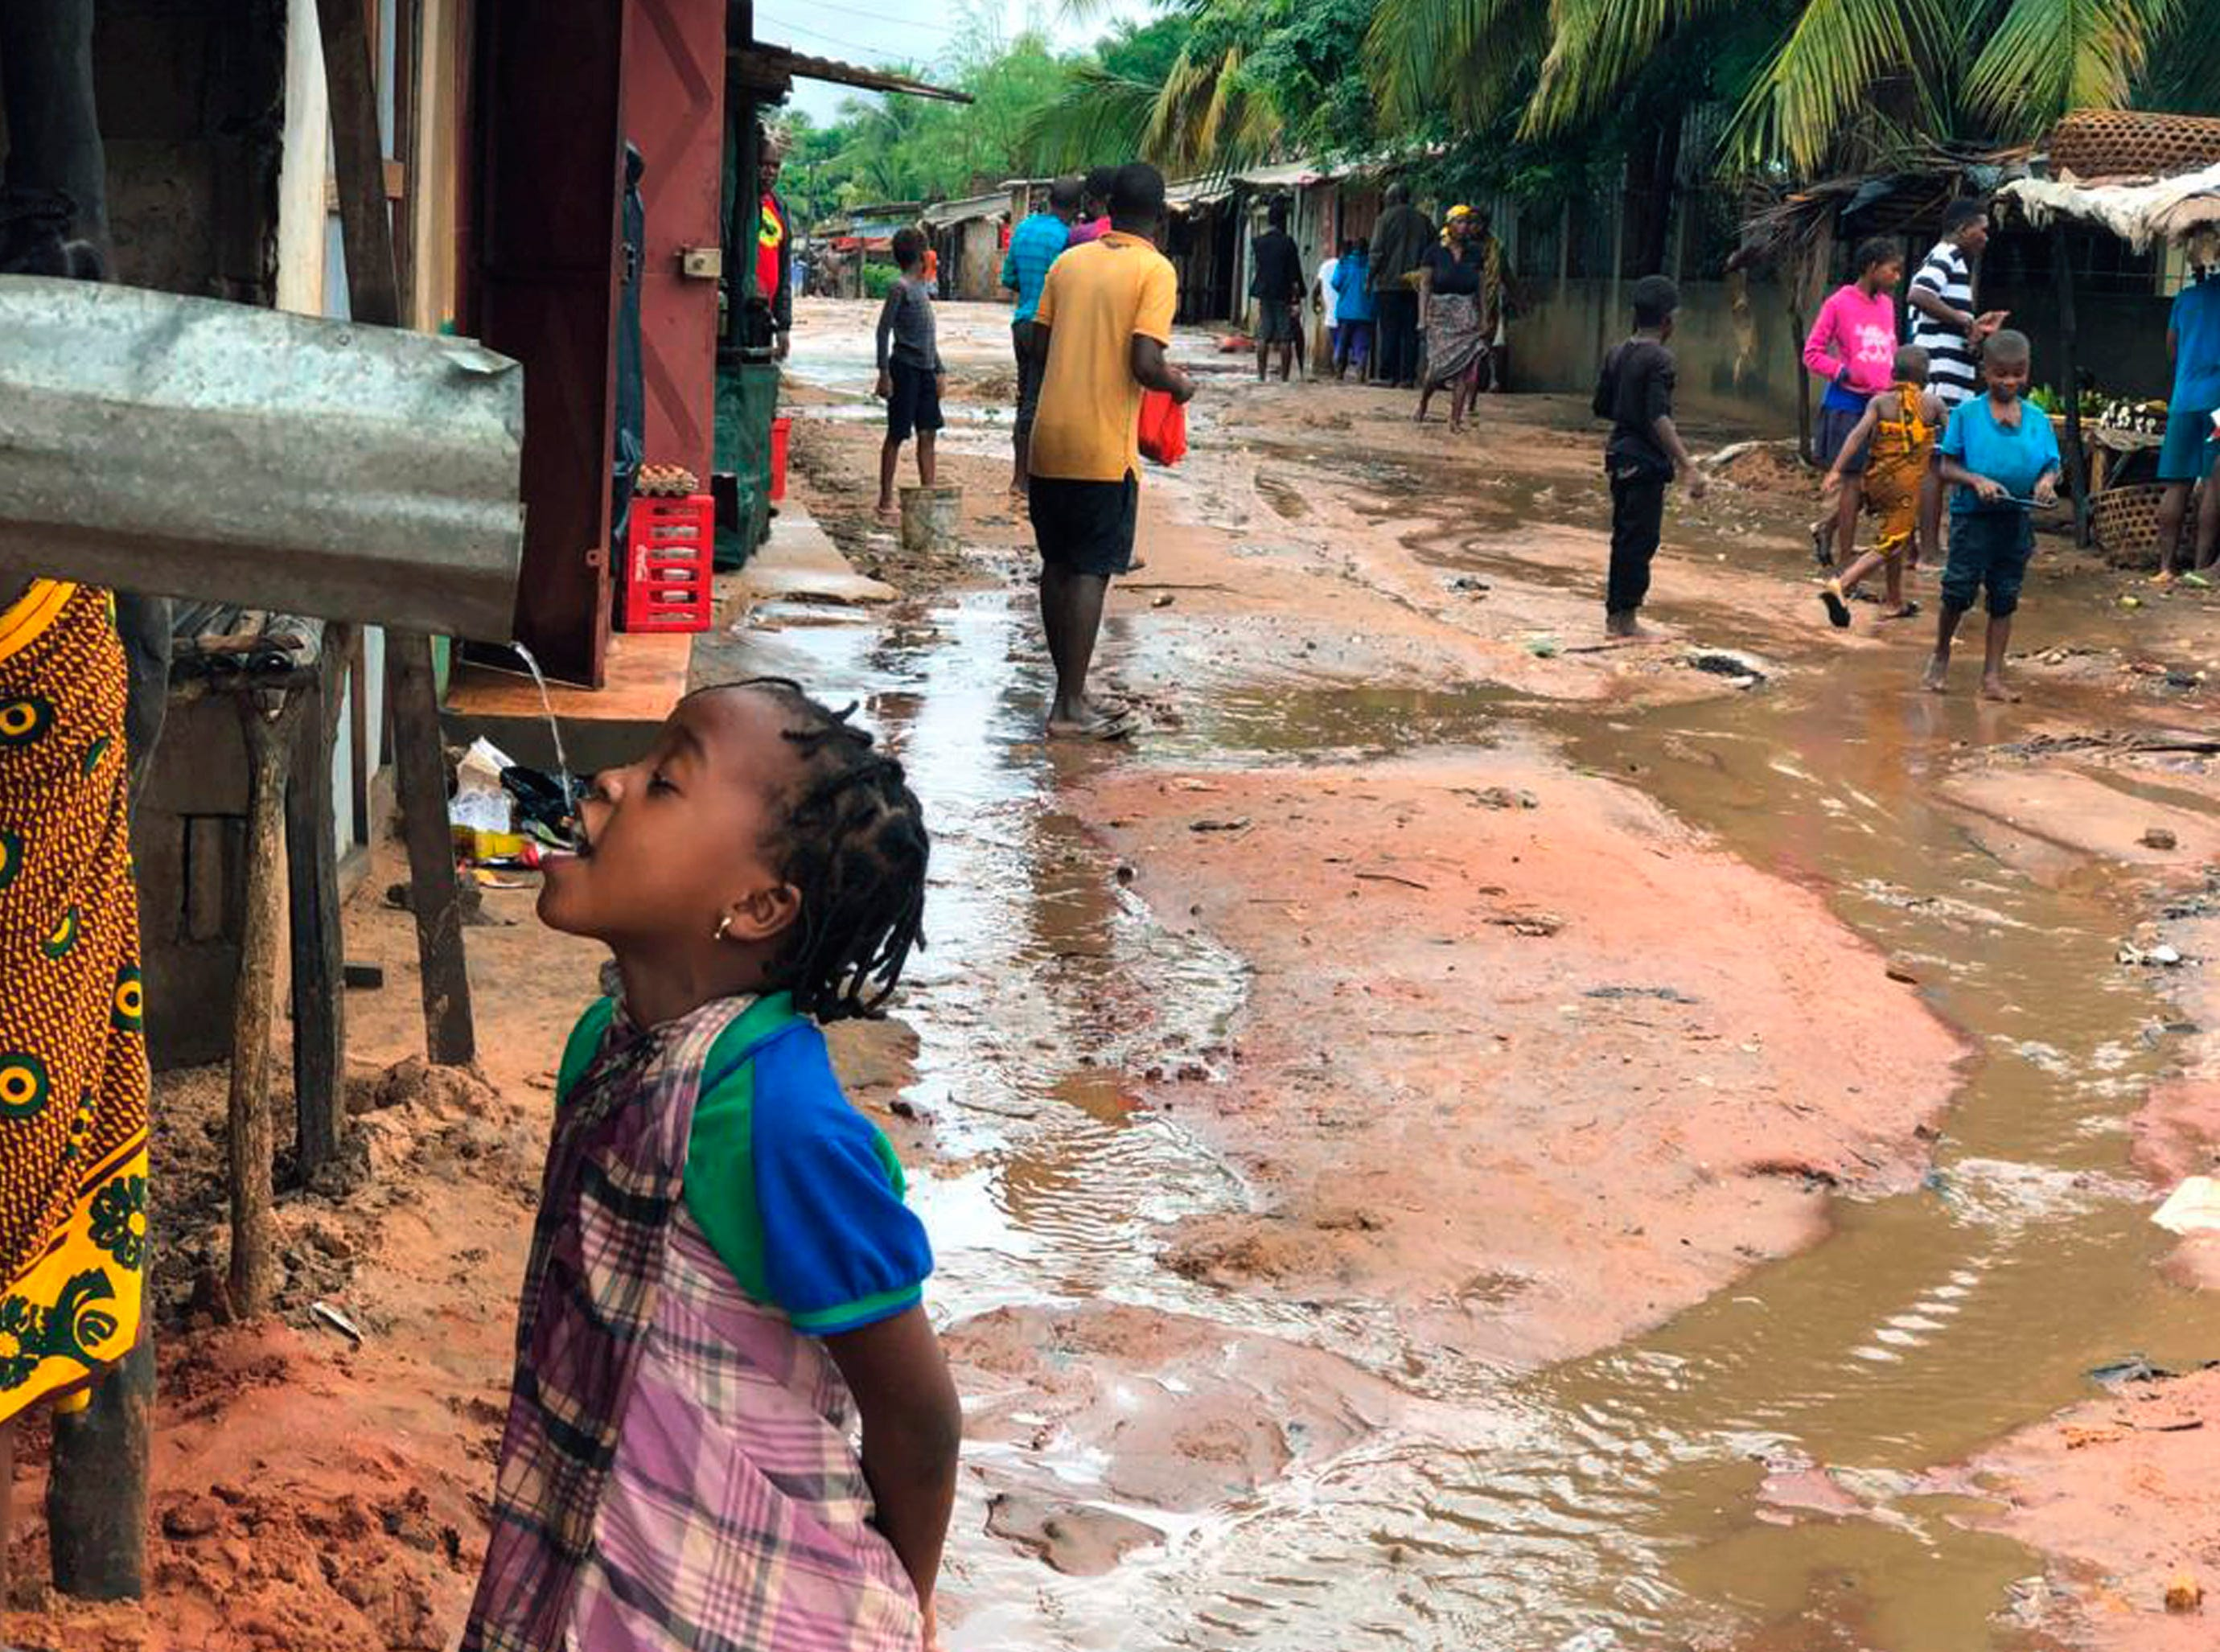 A child drinks from a gutter during floods from heavy rains in Pemba, Mozambique, Sunday, April 28, 2019. Serious flooding began on Sunday in parts of northern Mozambique that were hit by Cyclone Kenneth three days ago, with waters waist-high in areas, after the government urged many people to immediately seek higher ground. Hundreds of thousands of people were at risk.